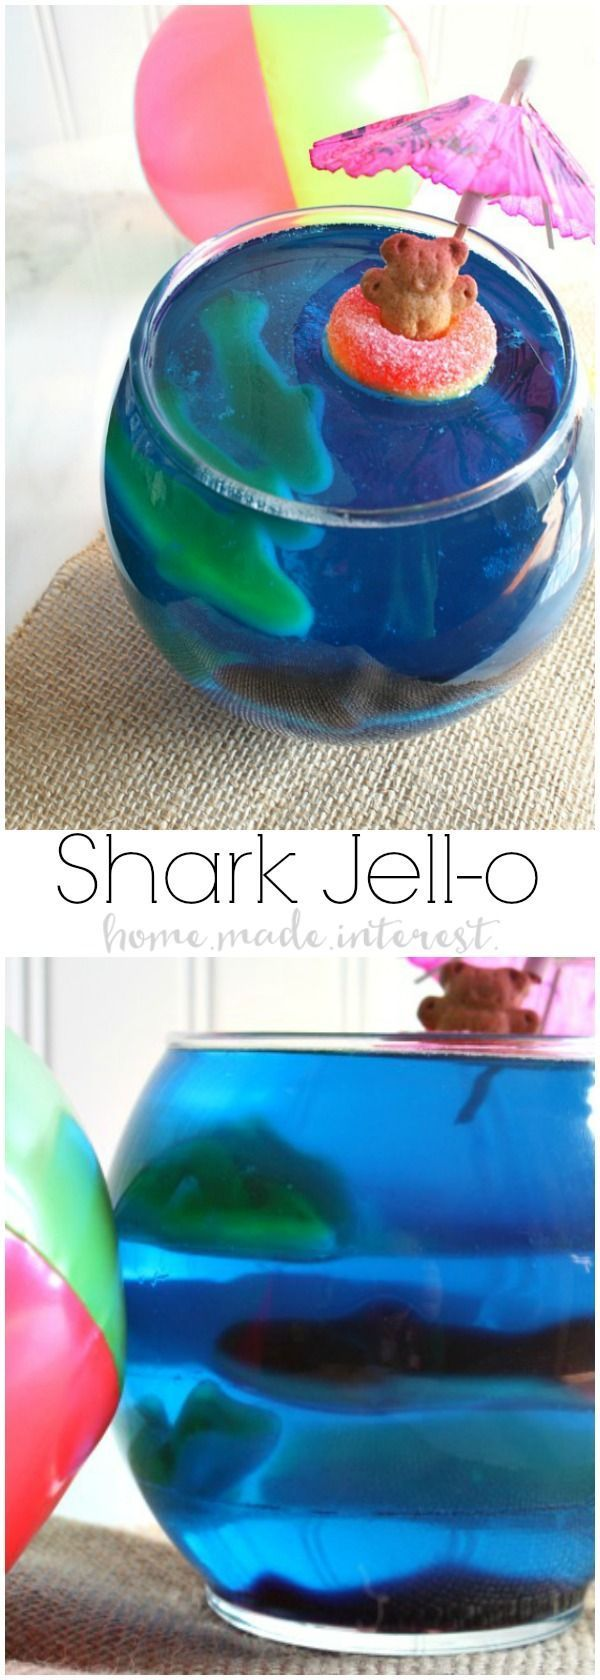 Shark Jell-O | Home. Made. Interest.